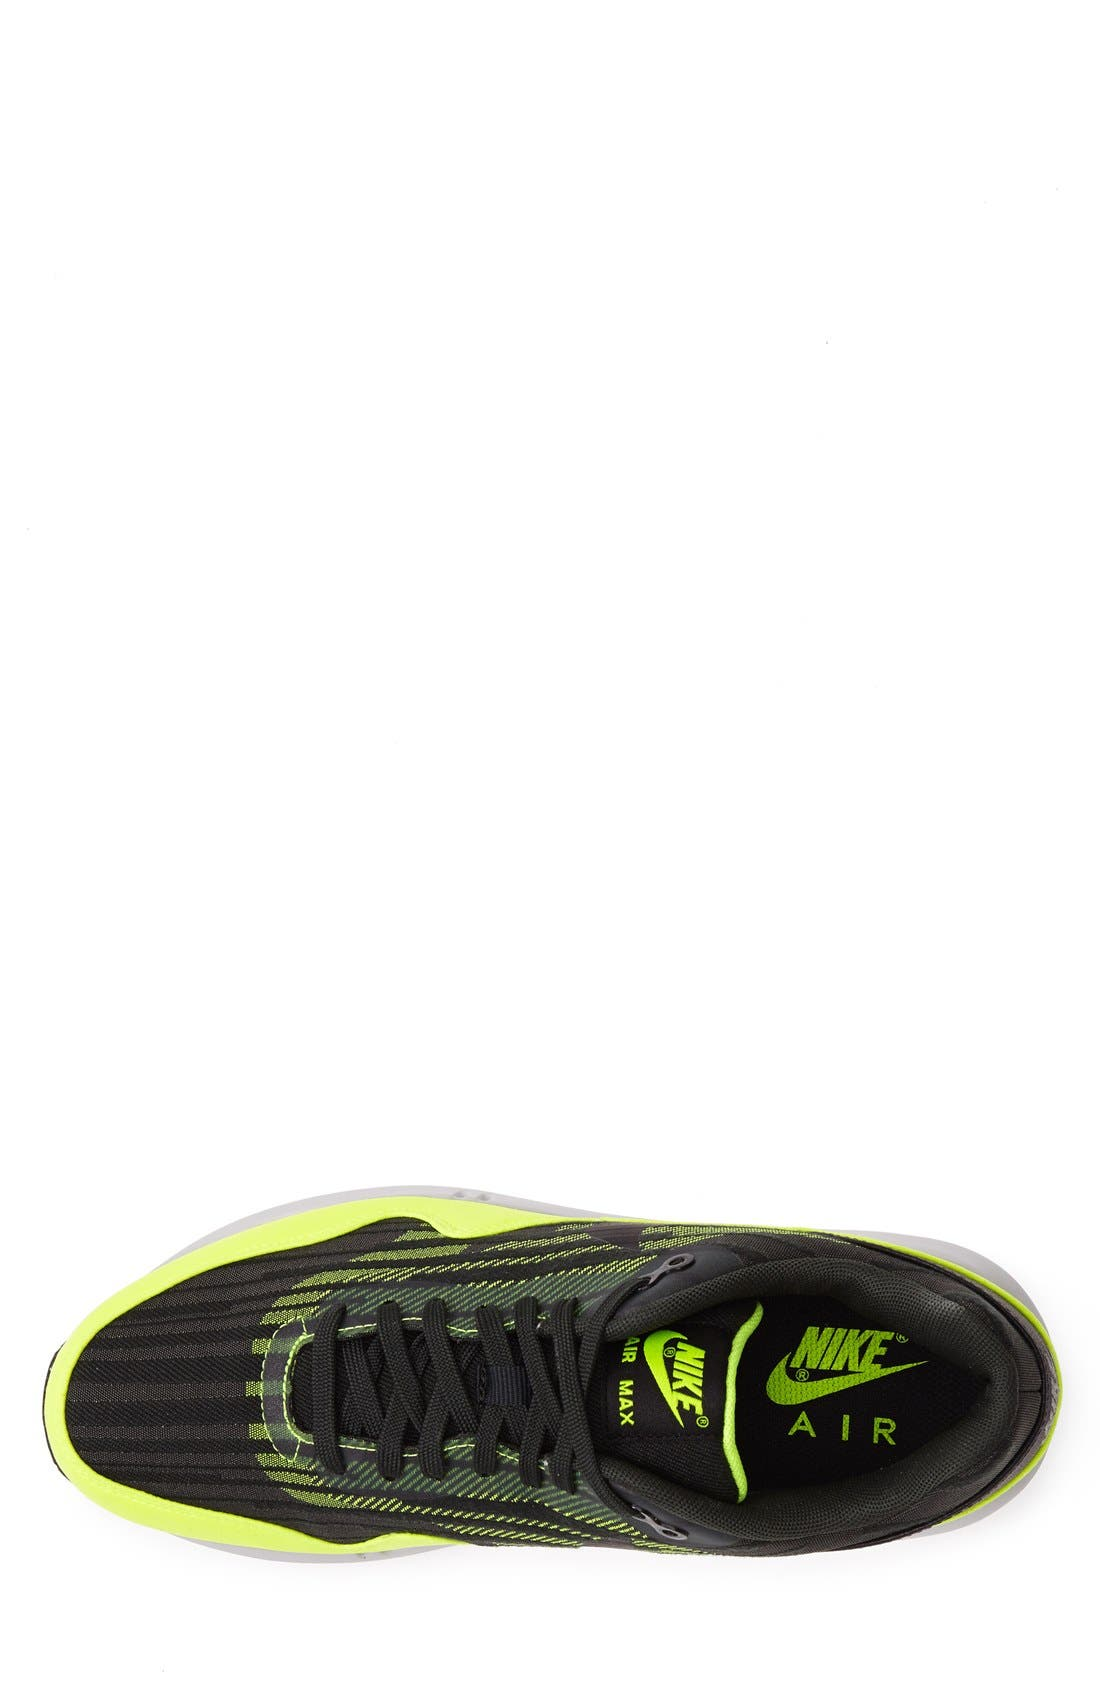 Alternate Image 3  - Nike 'Air Max Lunar 1 Jacquard' Sneaker (Men)